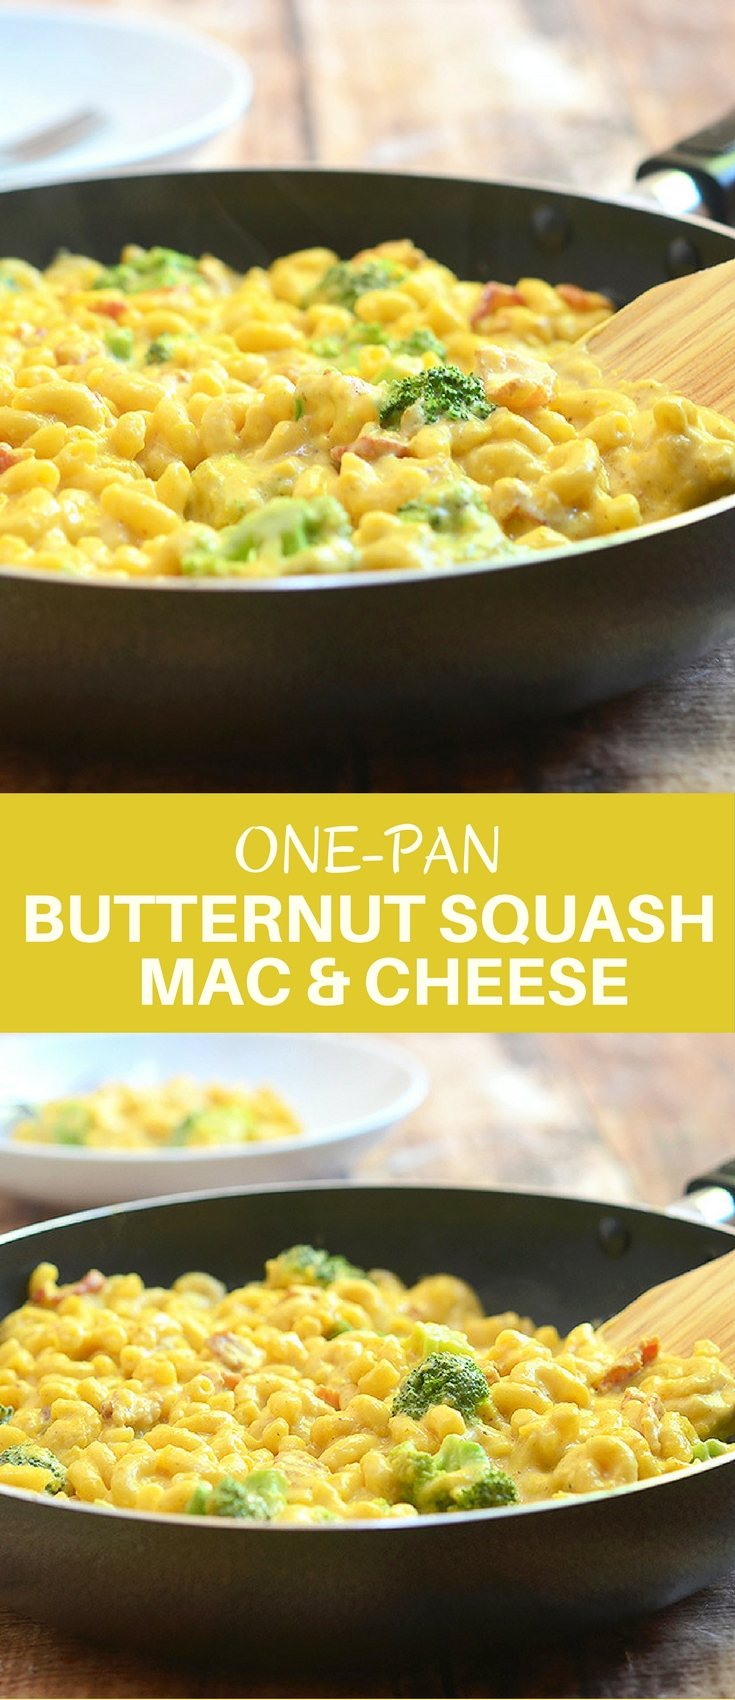 One-Pan Butternut Squash Macaroni and Cheese with bacon, broccoli, and a creamy butternut squash sauce is the ultimate Fall comfort food. And it's ready in 30 minutes and in one pan!